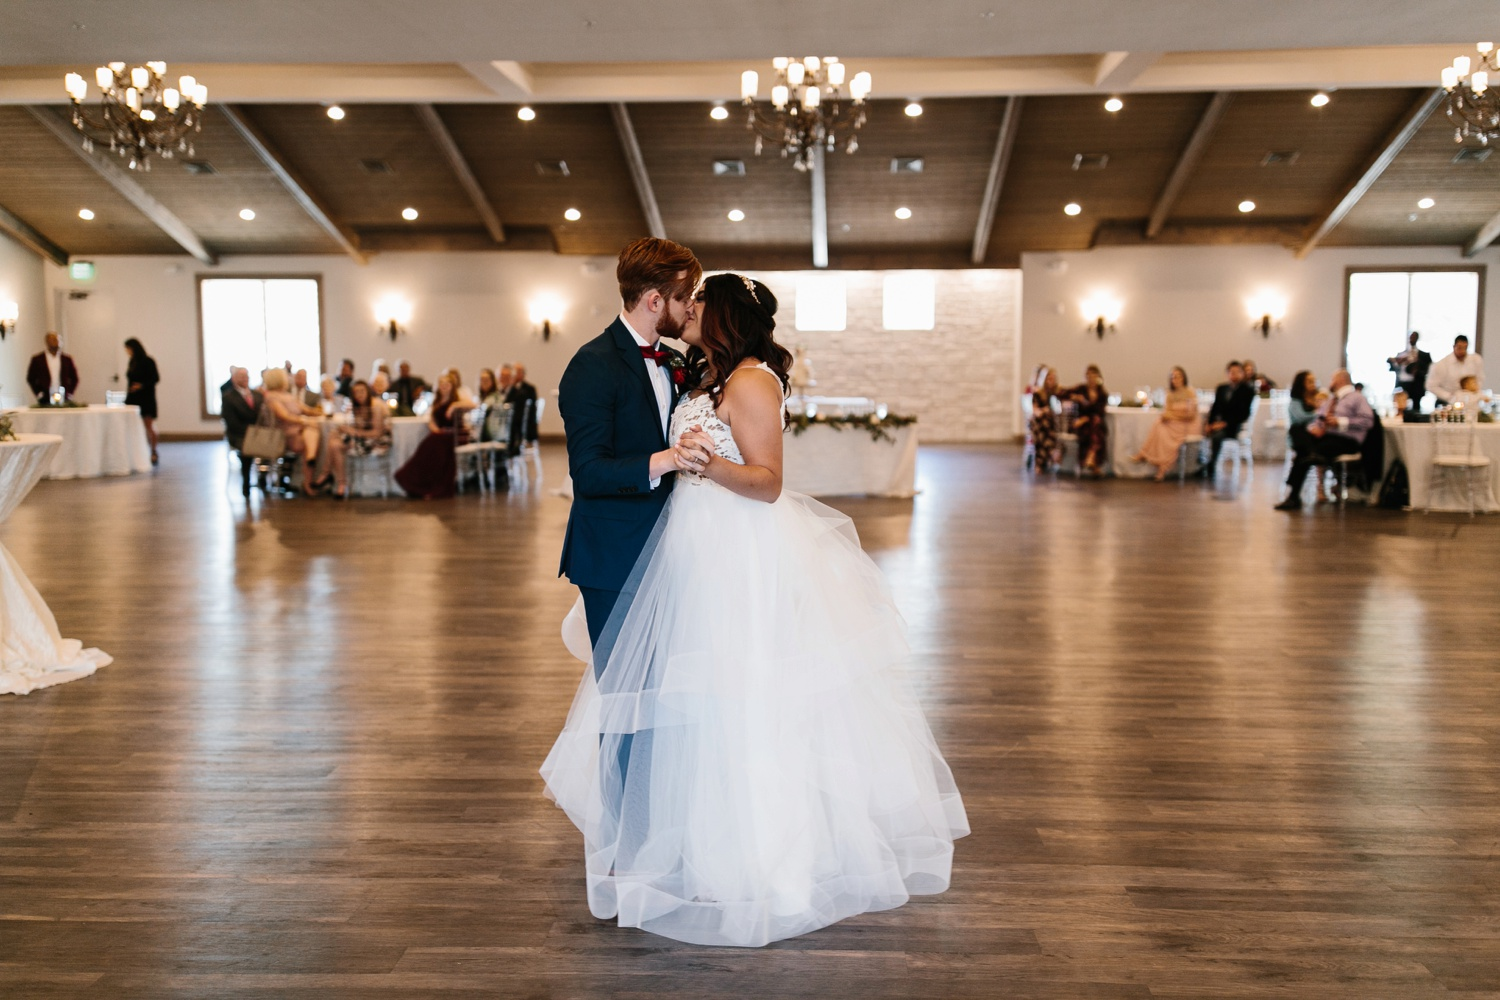 Grant + Lysette | a vibrant, deep burgundy and navy, and mixed metals wedding at Hidden Pines Chapel by North Texas Wedding Photographer Rachel Meagan Photography 135